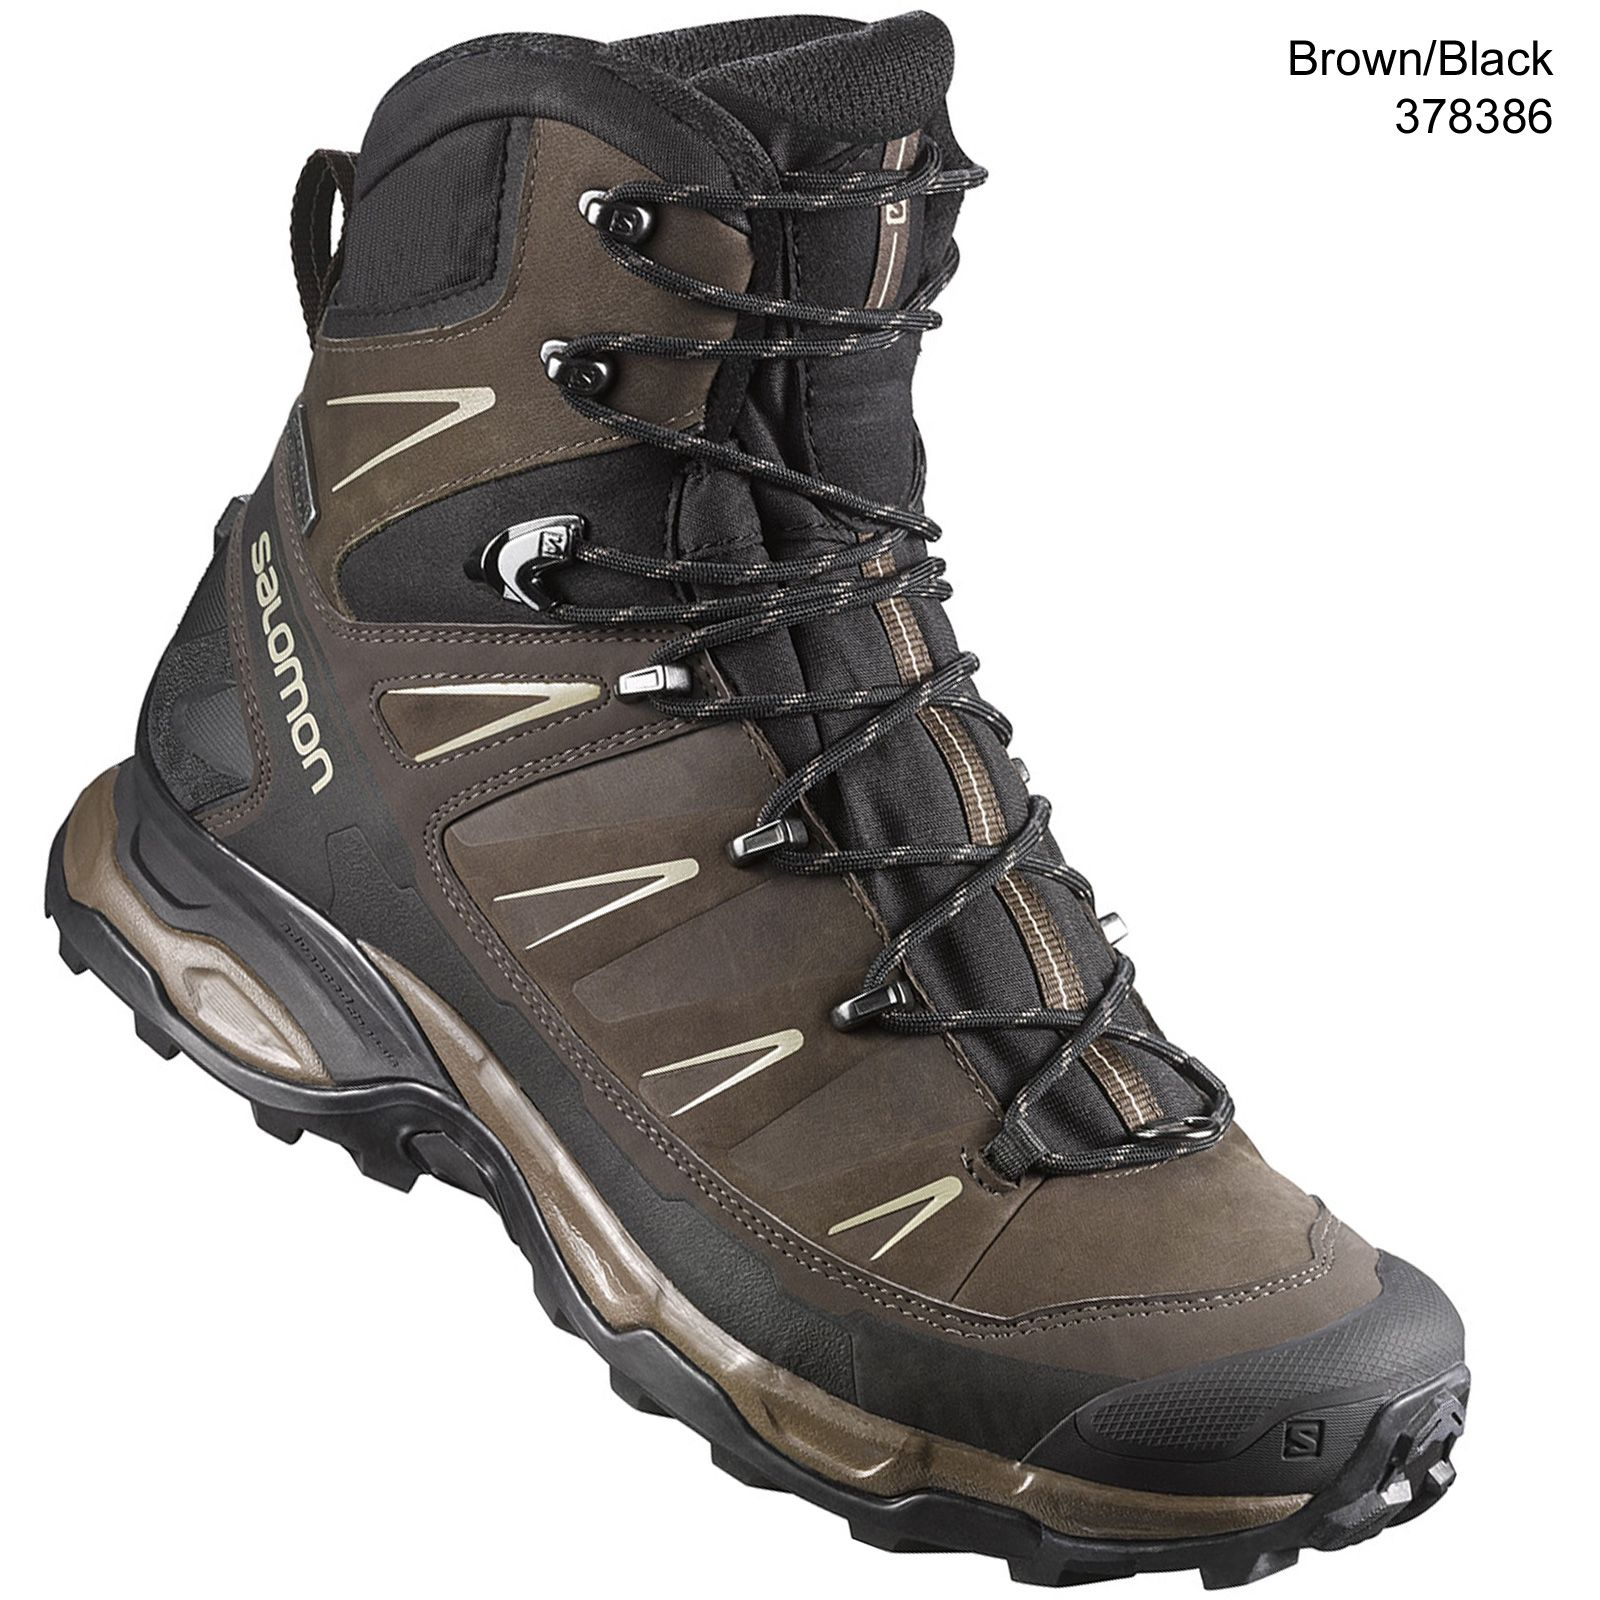 Salomon X Ultra Trek GTX GoreTex waterproof men's hiking ...